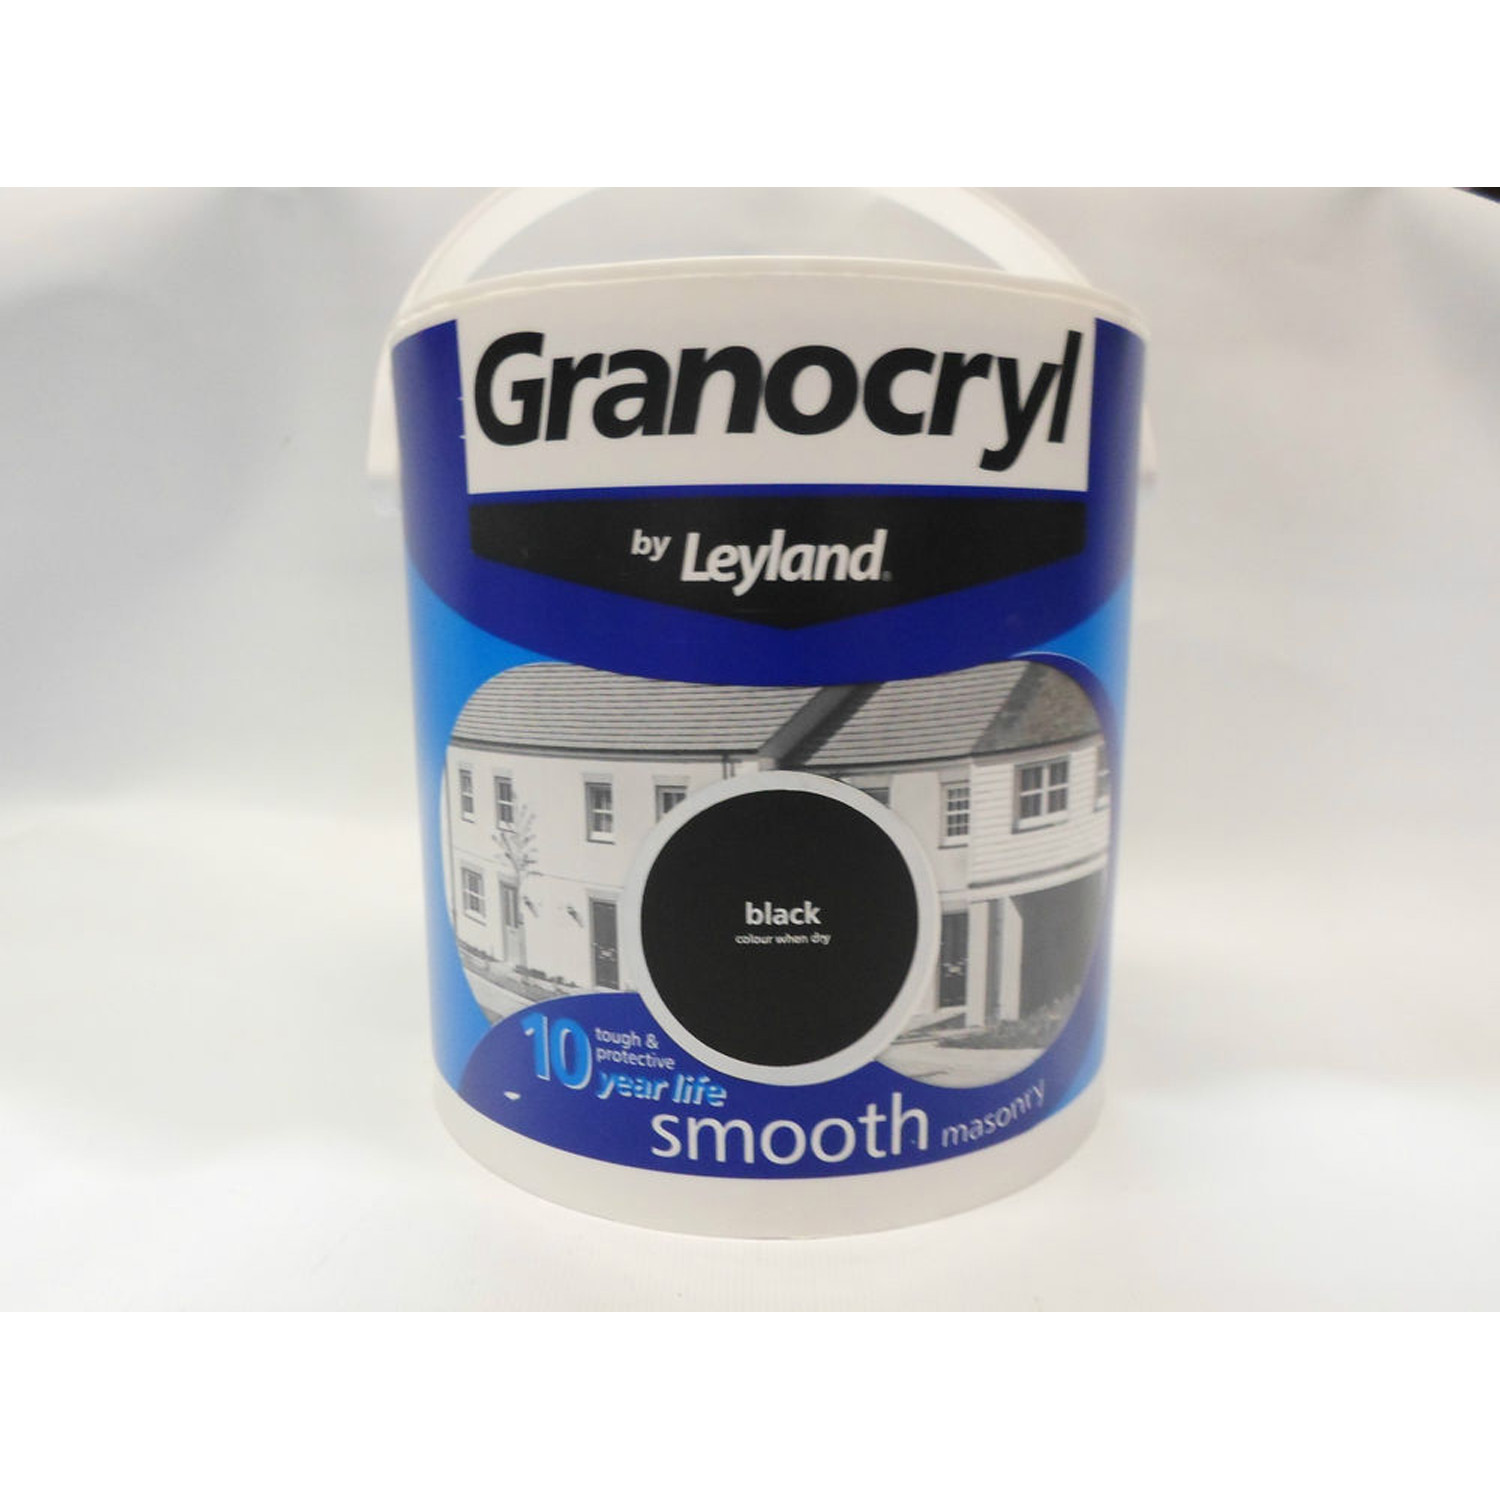 Image of Granocryl 2.5L Smooth Masonry Paint, Black